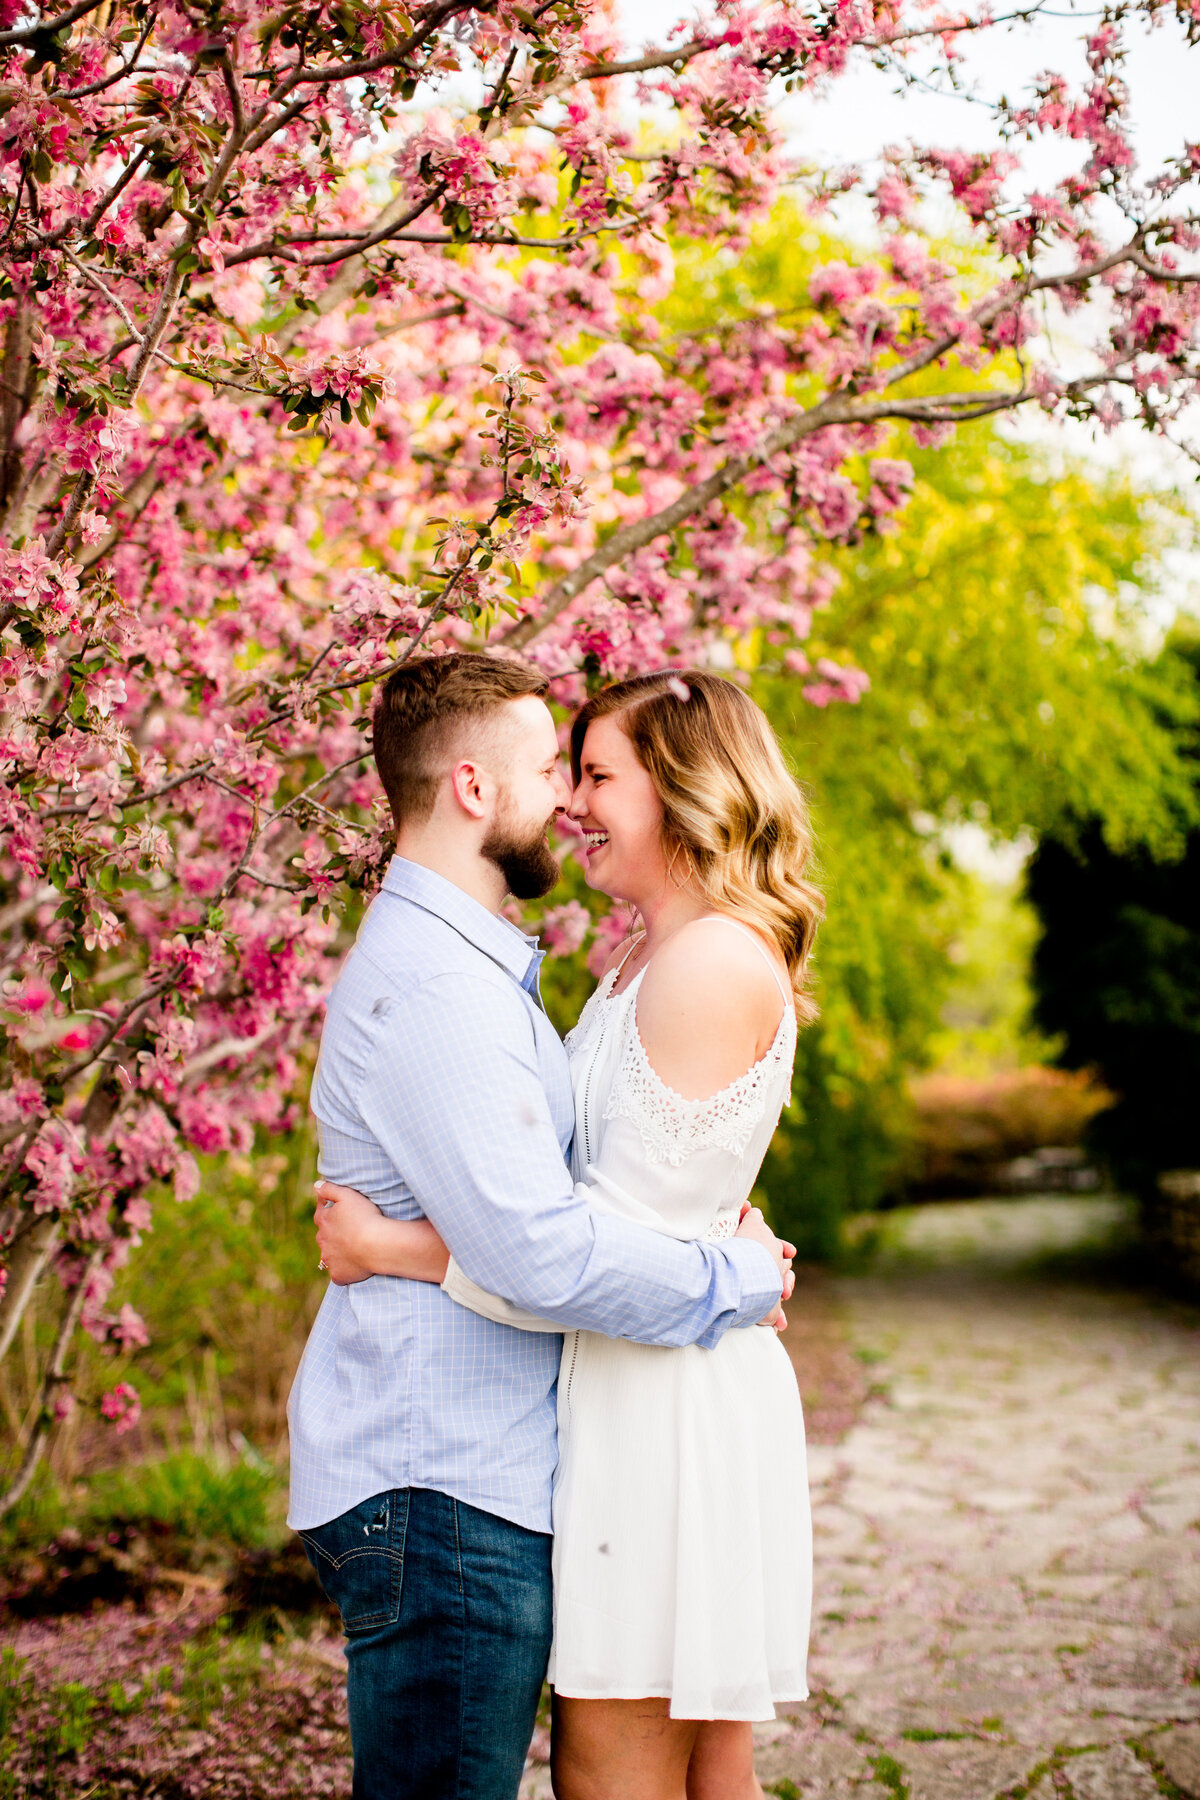 Caitlin and Luke Photography Wedding Engagement Luxury Illinois Destination Colorful Bright Joyful Cheerful Photographer 892